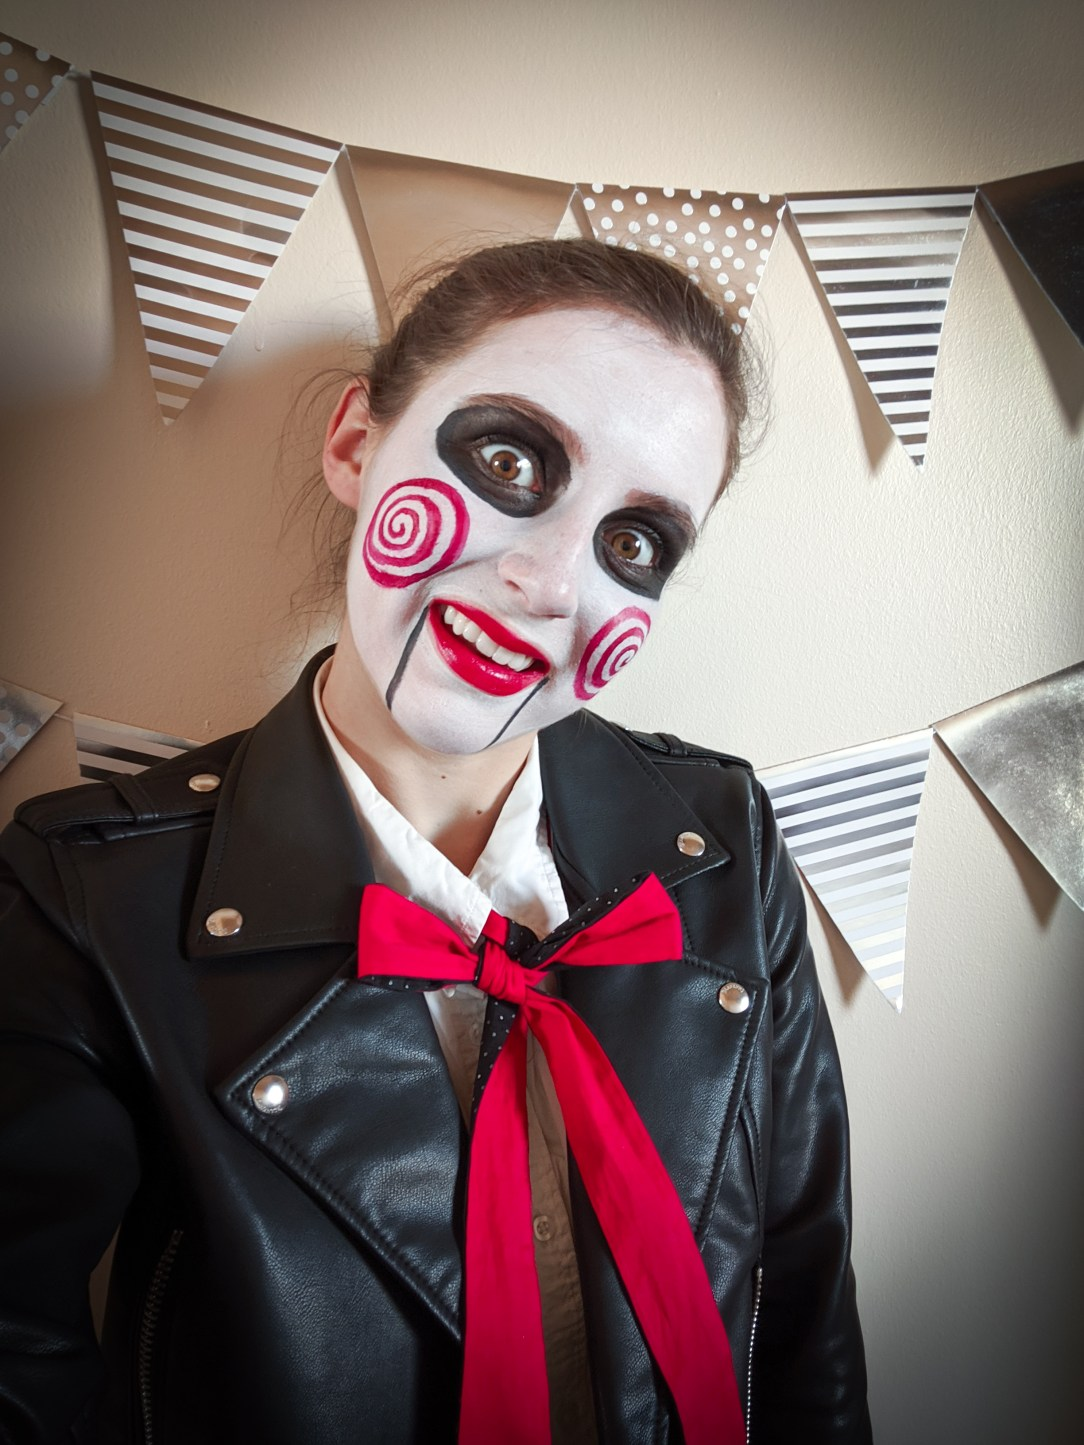 puppet, Halloween costume, Saw, face paint